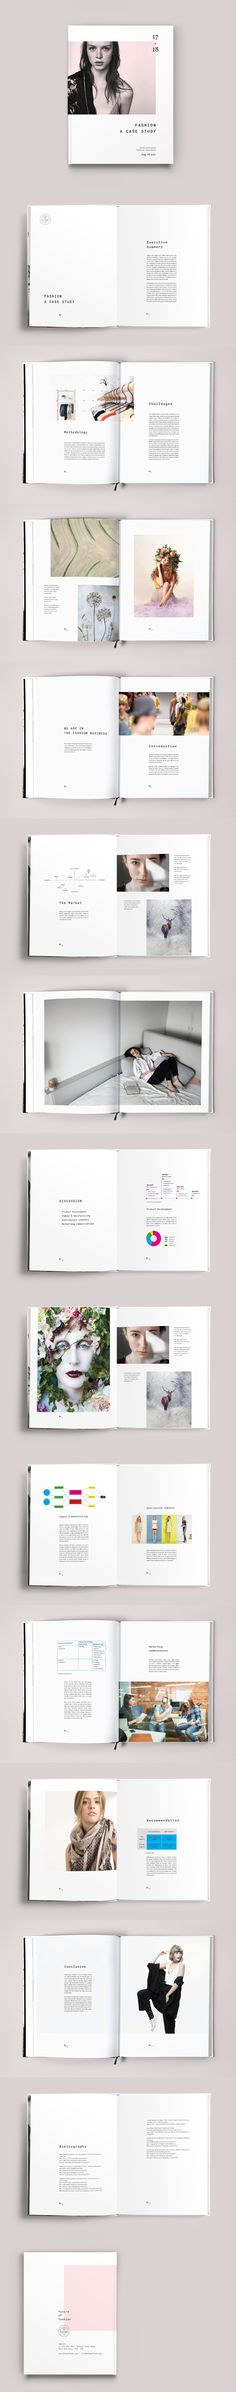 Fashion Case Study Template InDesign INDD - 28 Pages, A4 & US letter size + Bleed.elegant book layout.